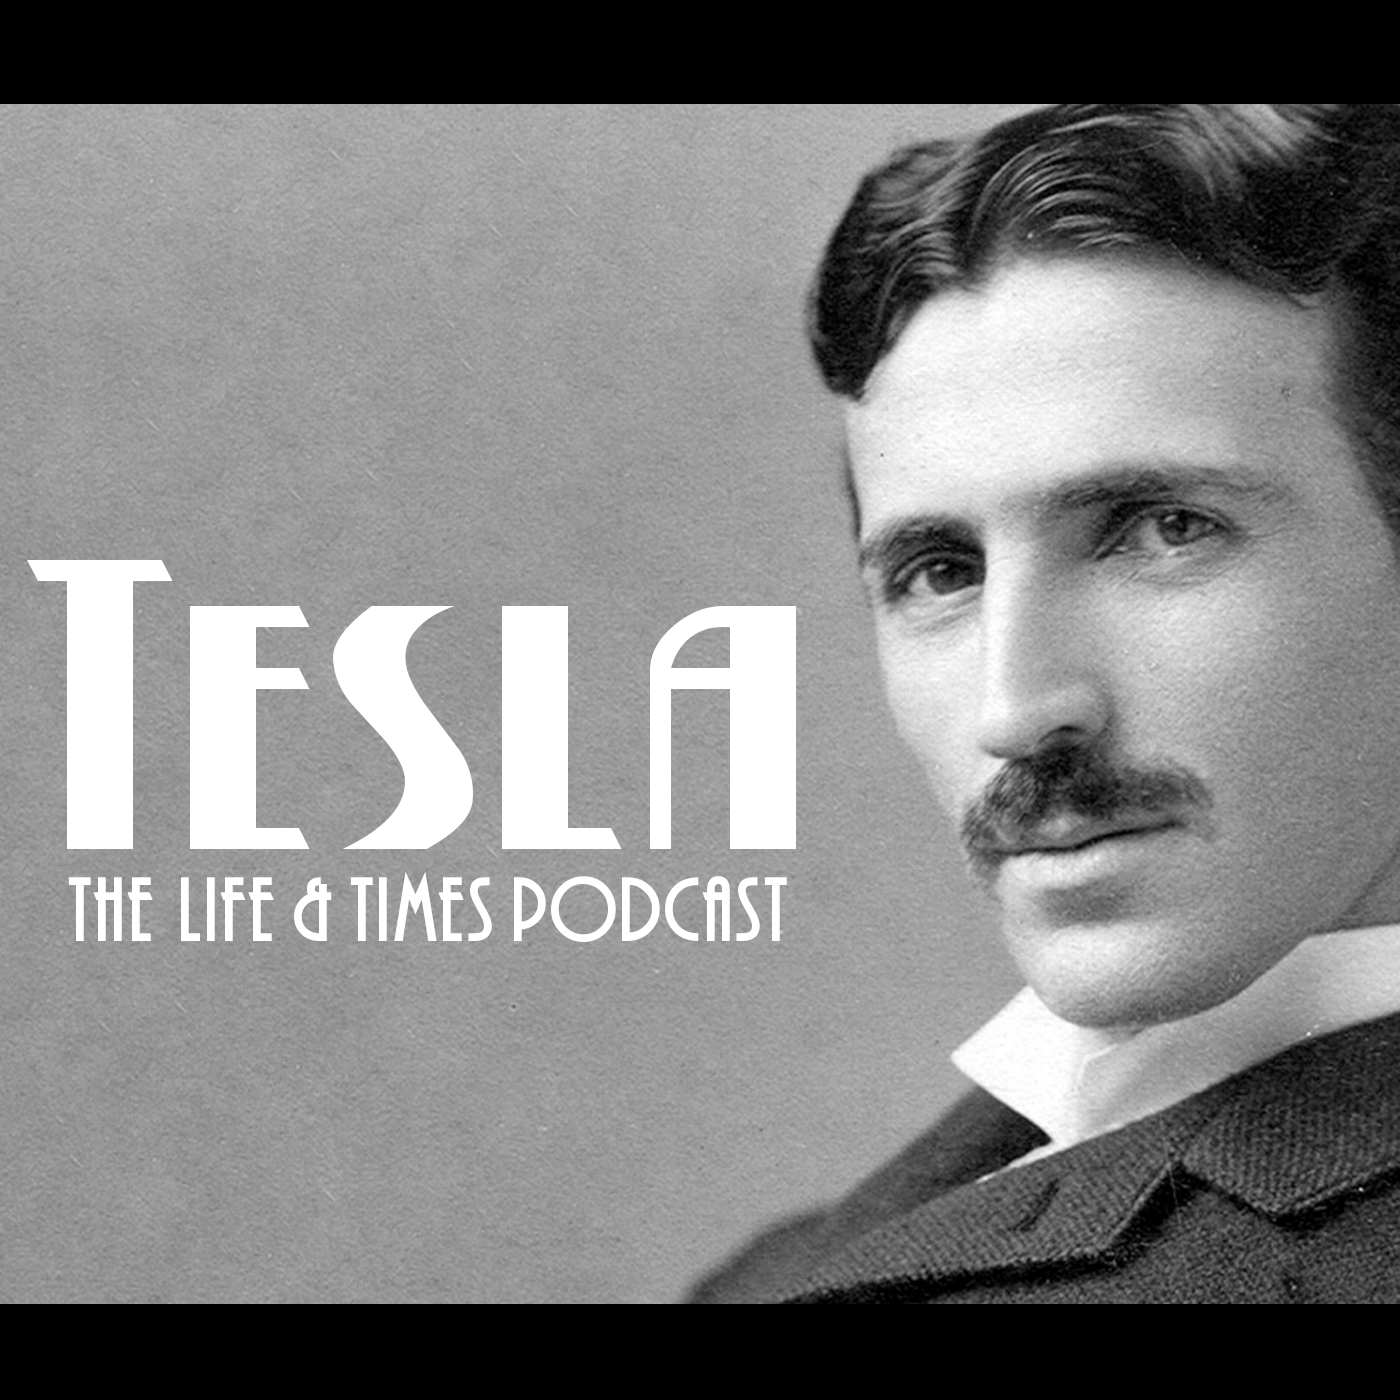 Tesla: The Life and Times Podcast show art